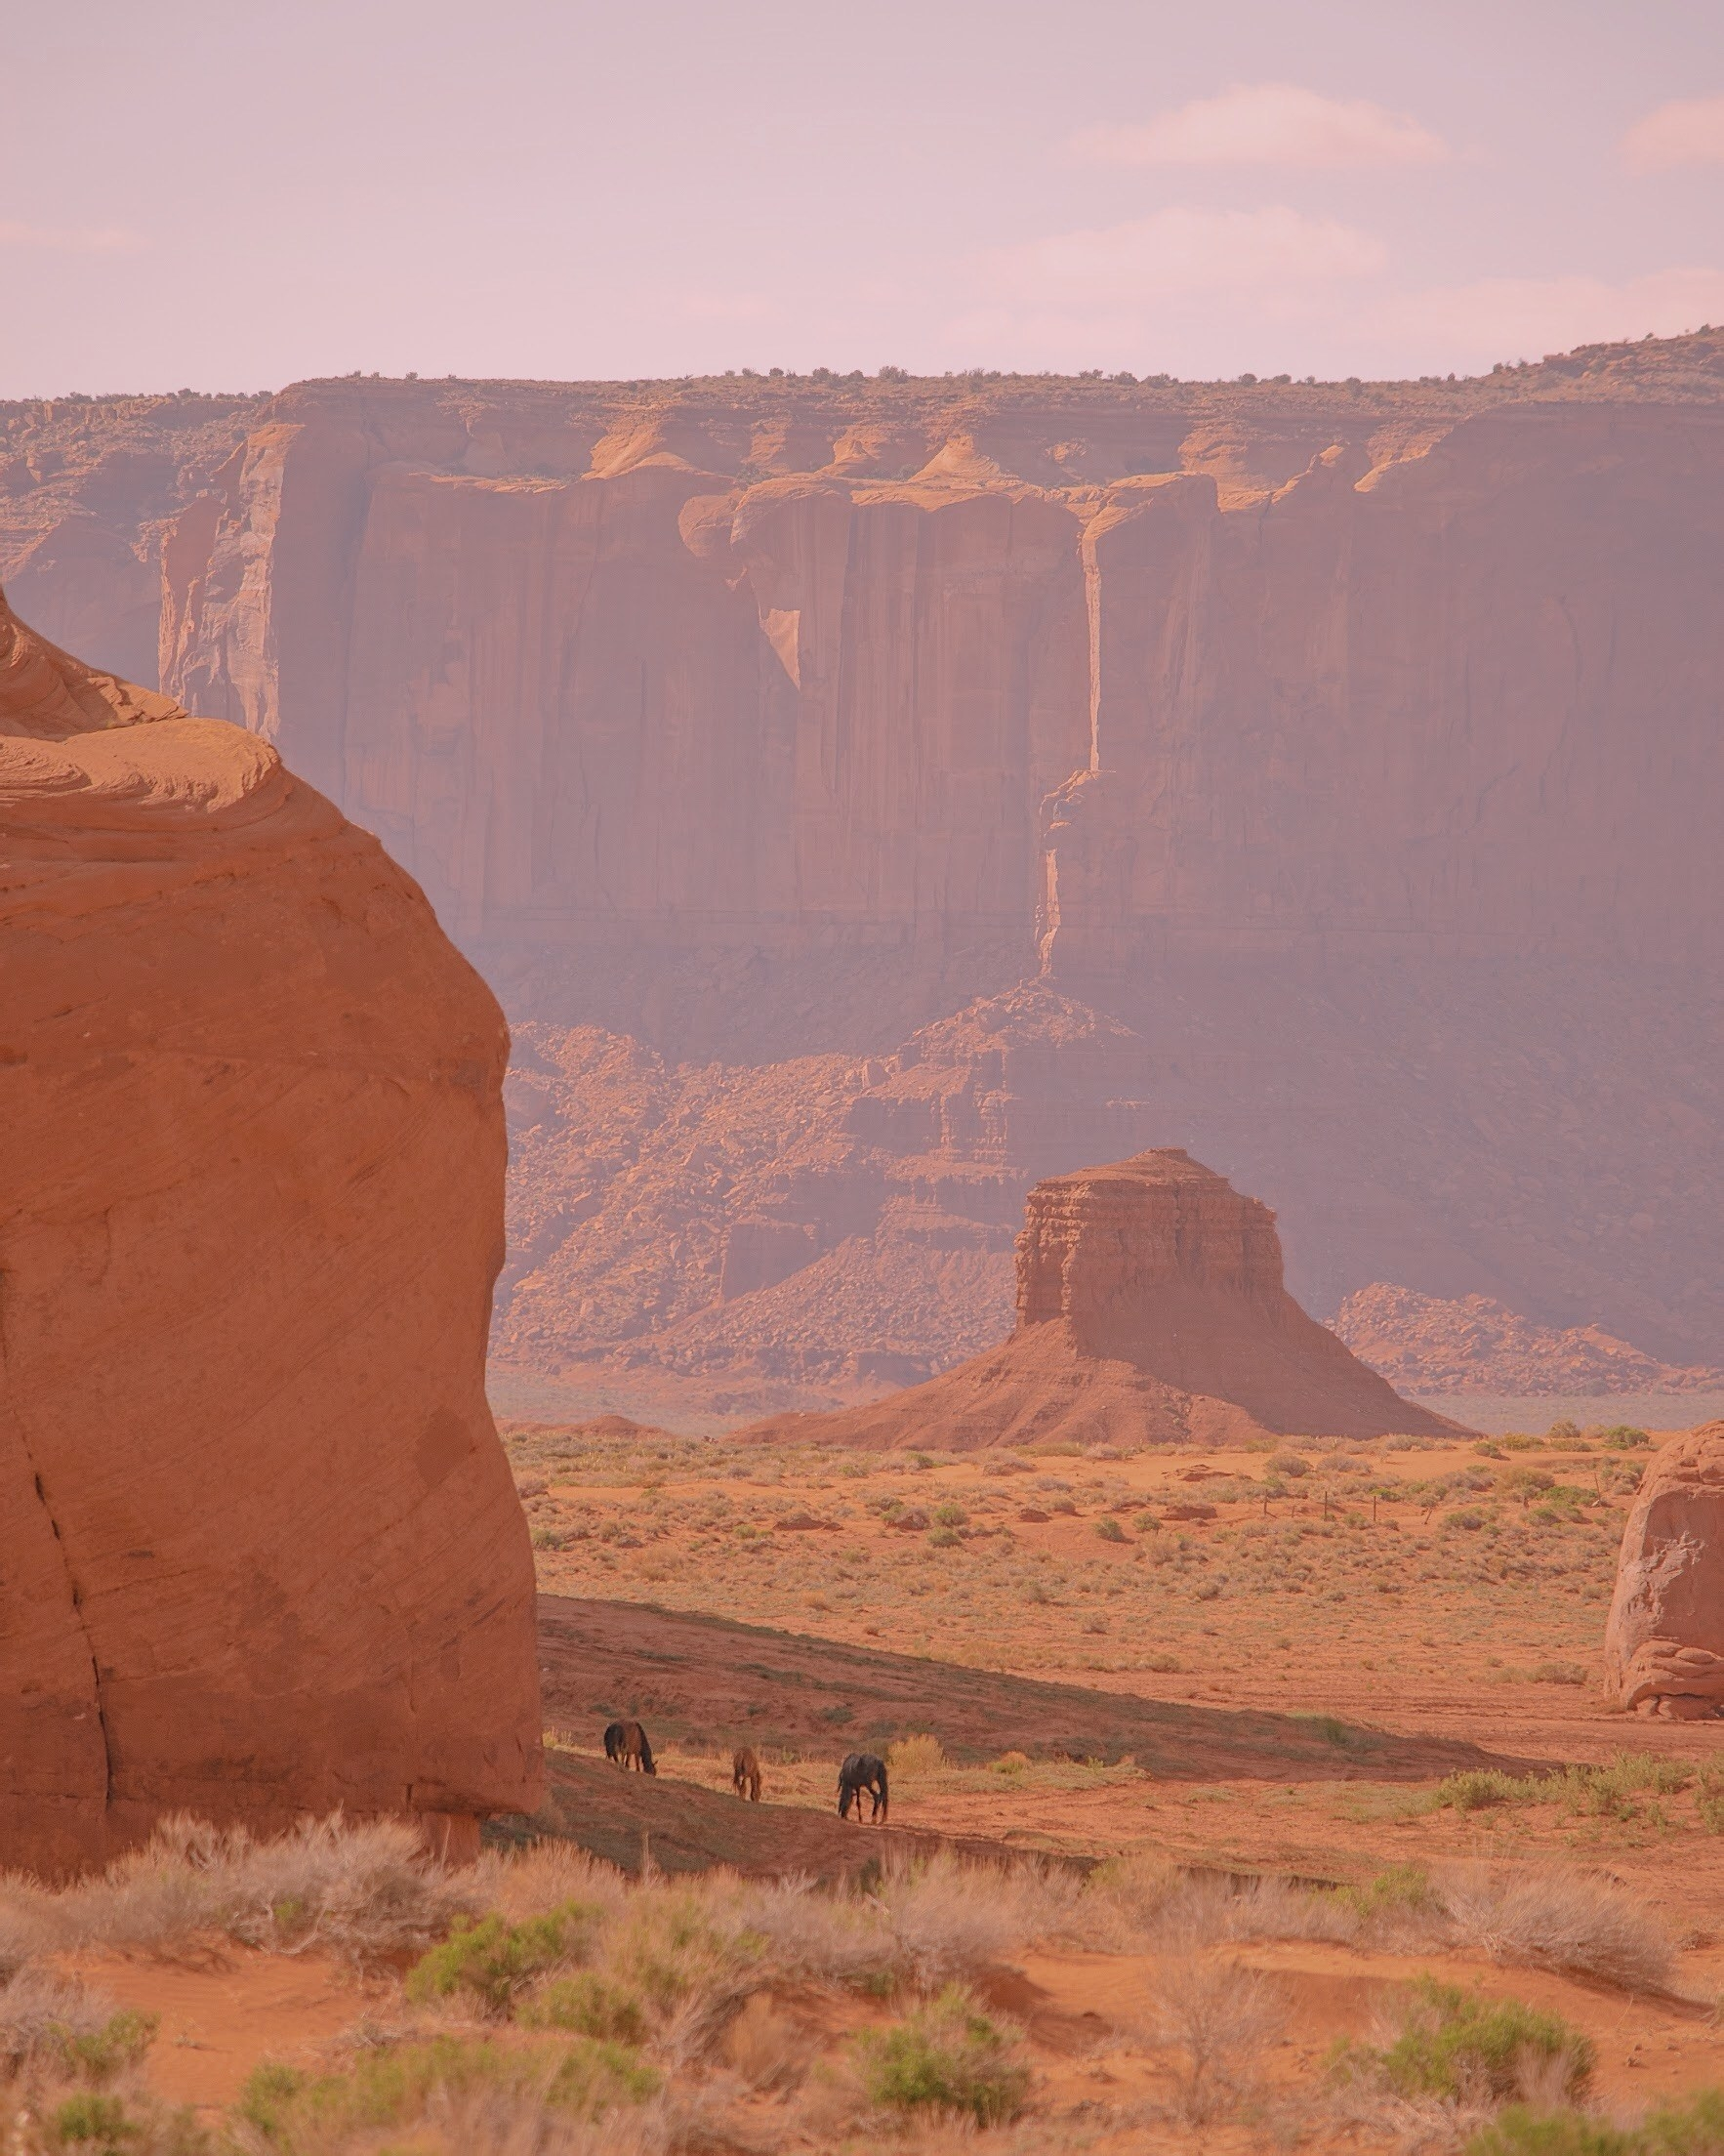 Three horses in a desert with buttes in the distance.